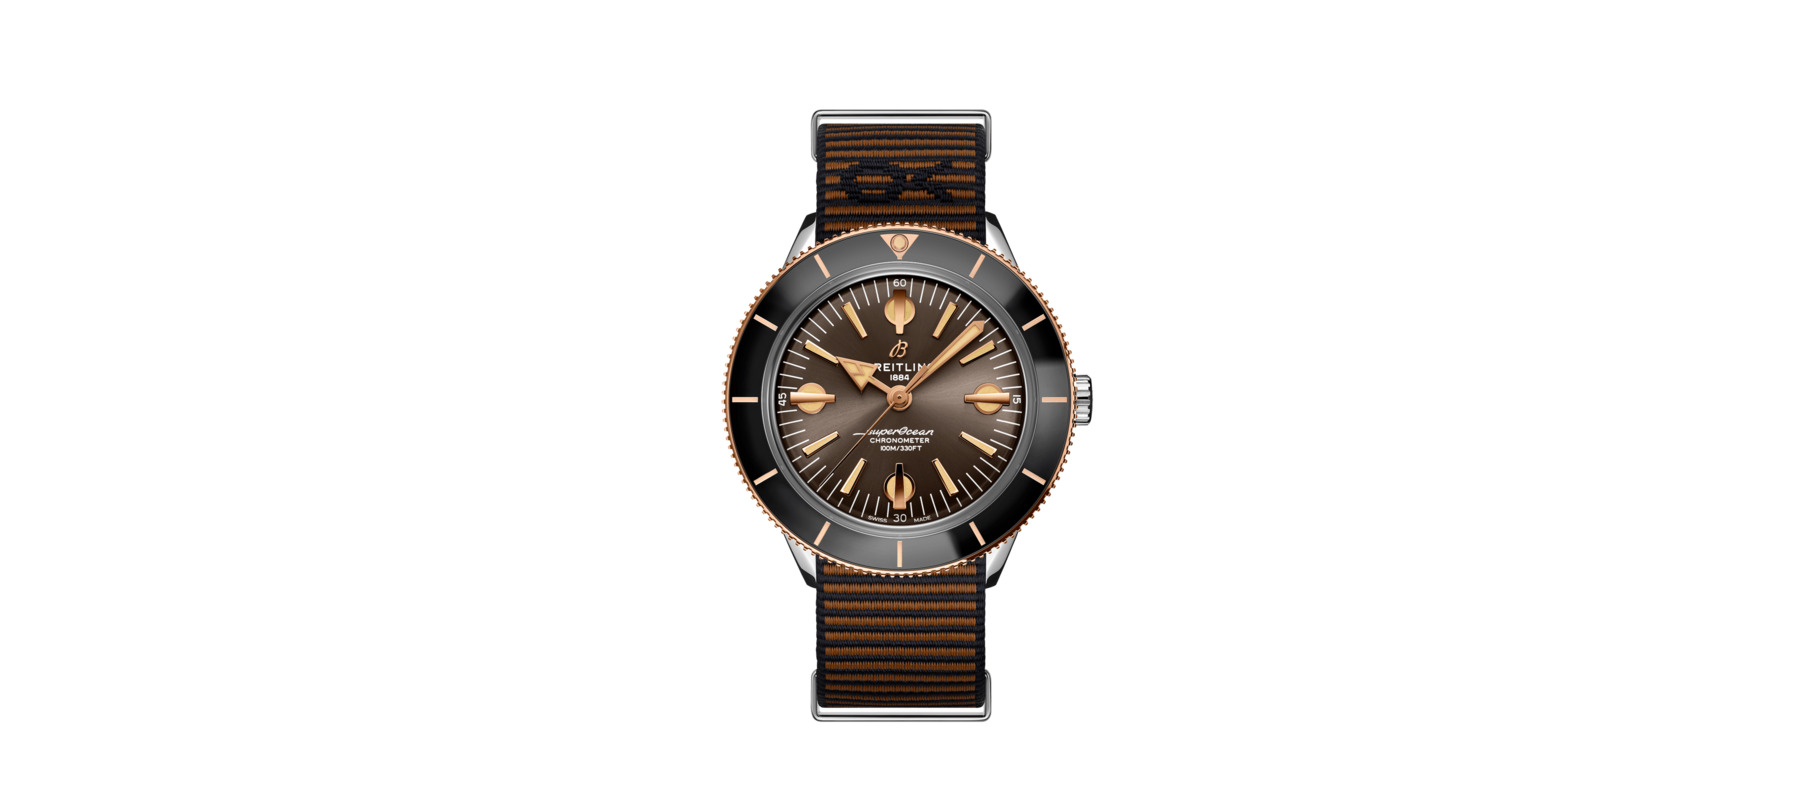 u103701a1q1w1-superocean-heritage-57-outerknown-limited-edition-soldier.jpg